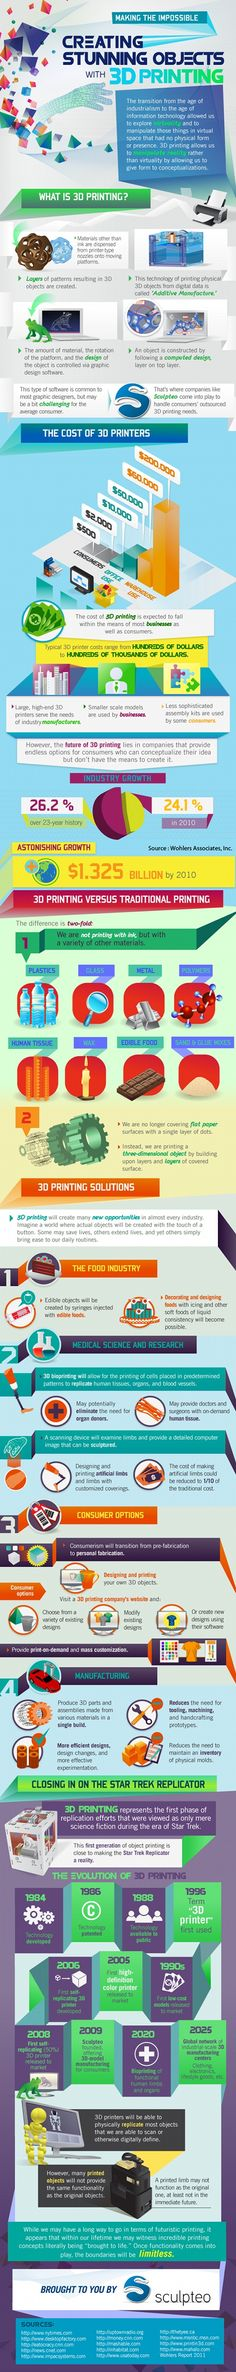 great infographic on 3D printing